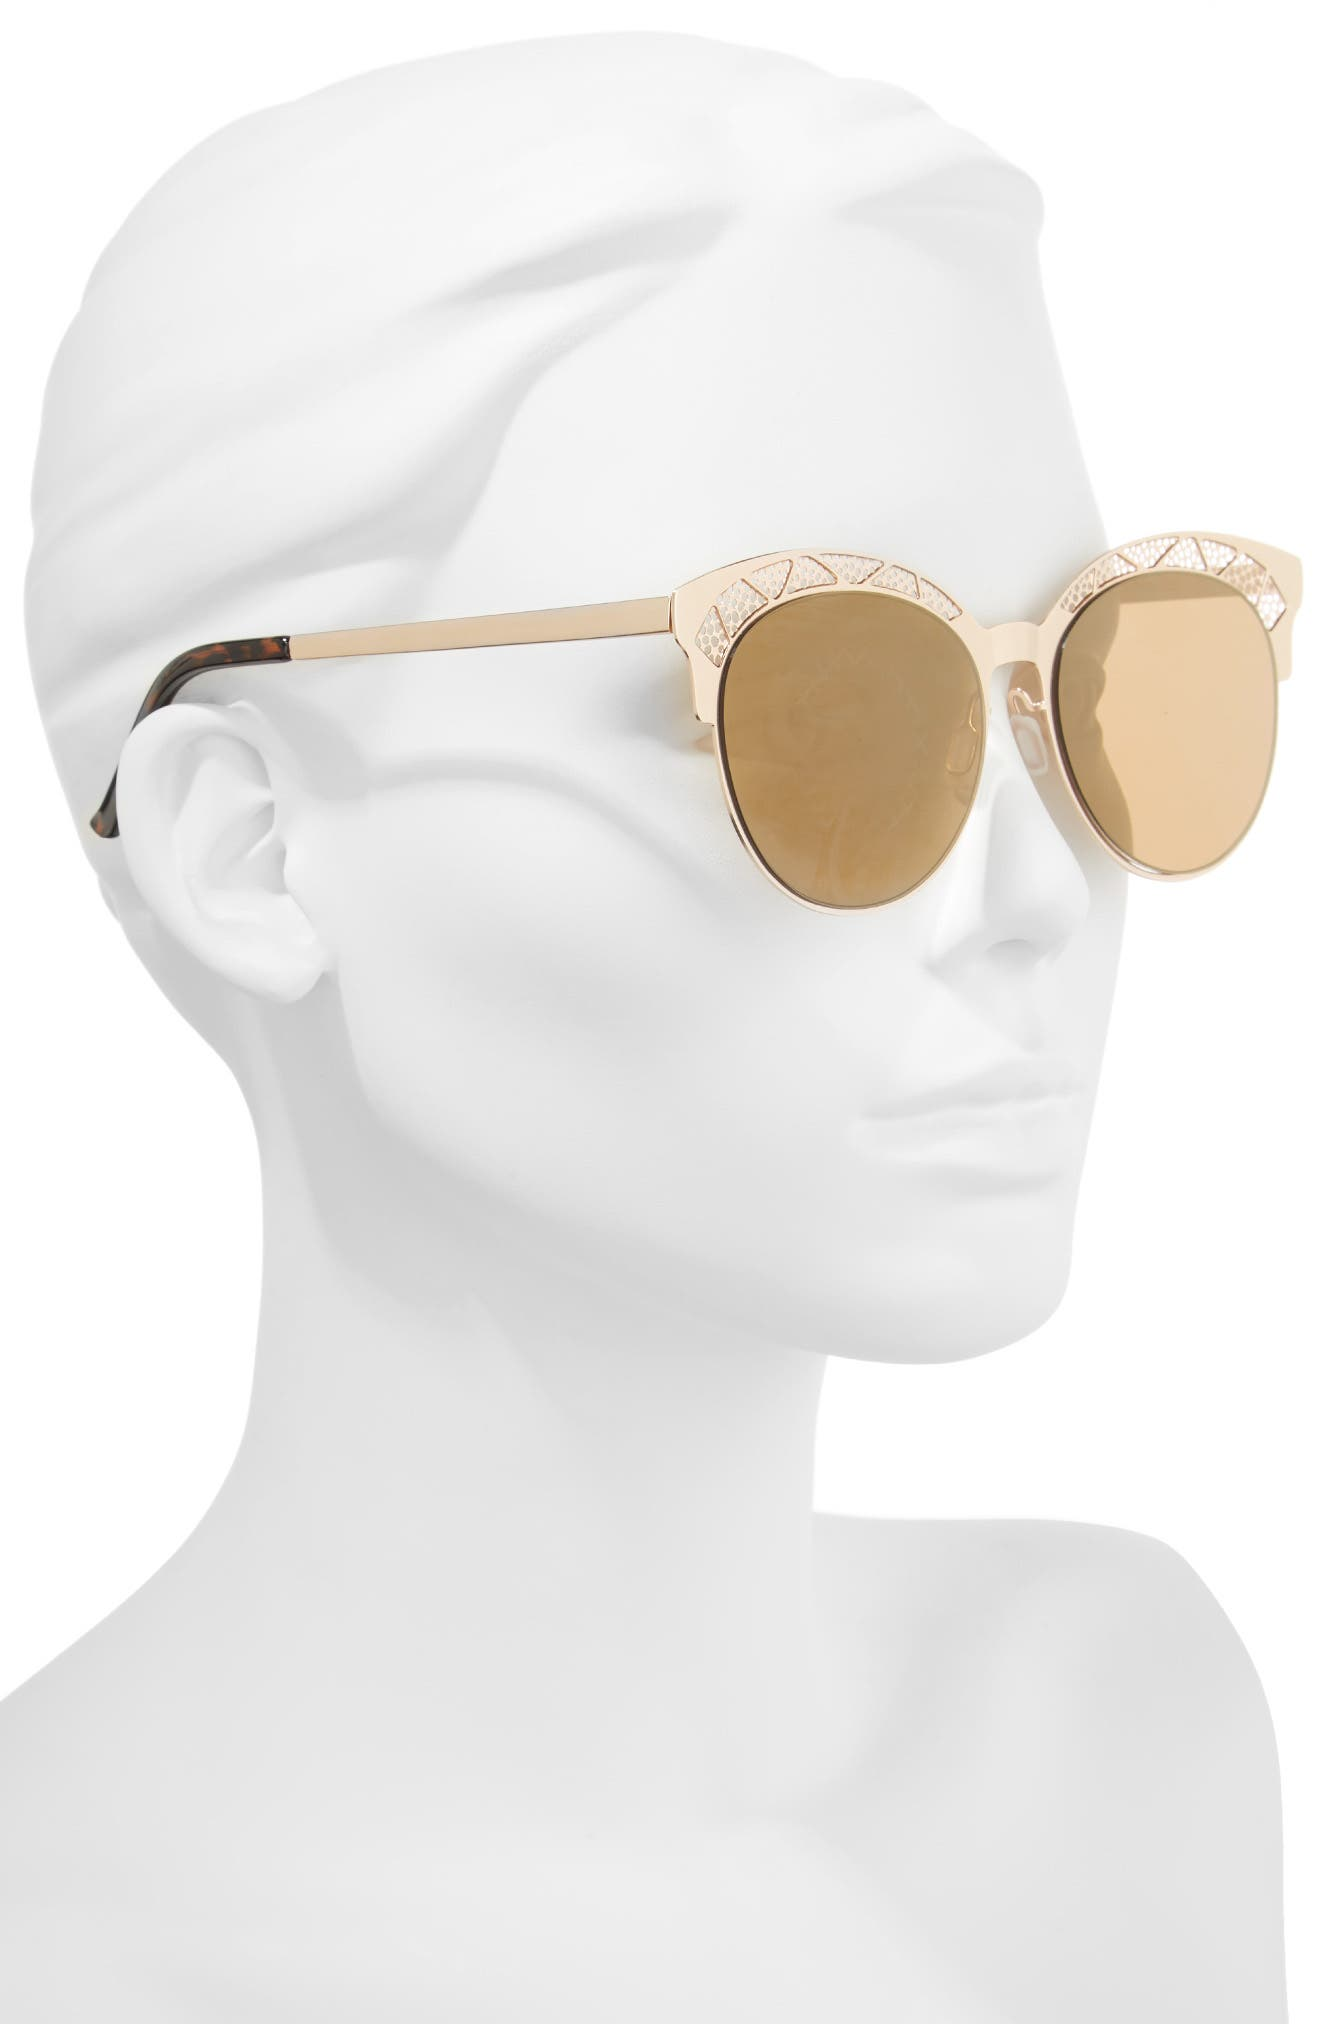 56mm Round Sunglasses,                             Alternate thumbnail 2, color,                             Gold/ Brown